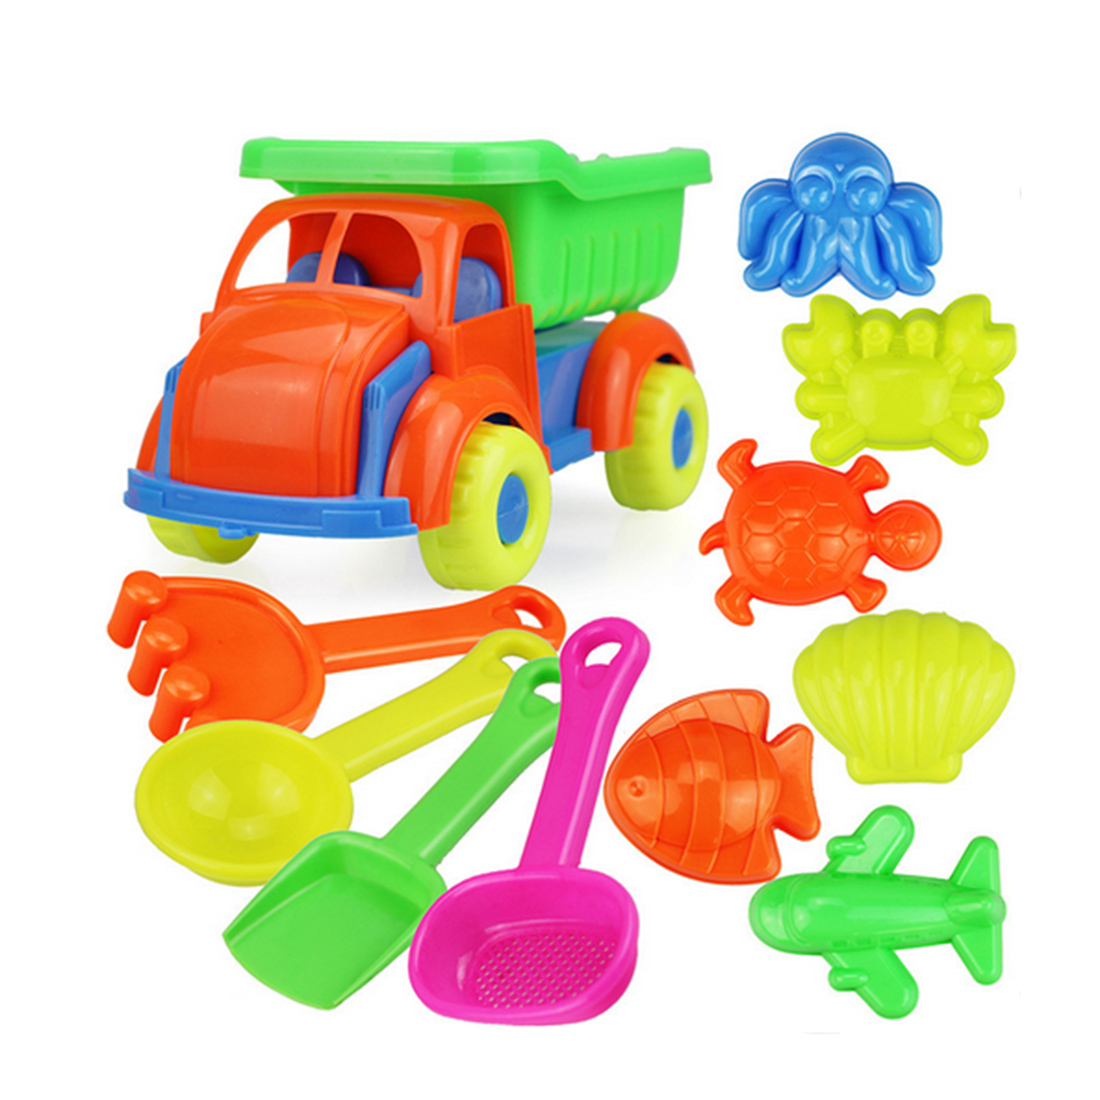 11-In-1 Summer Emulational Beach Car Toy Set Plastic Outdoor Beach Play Toys For Children Gifts - Random Color